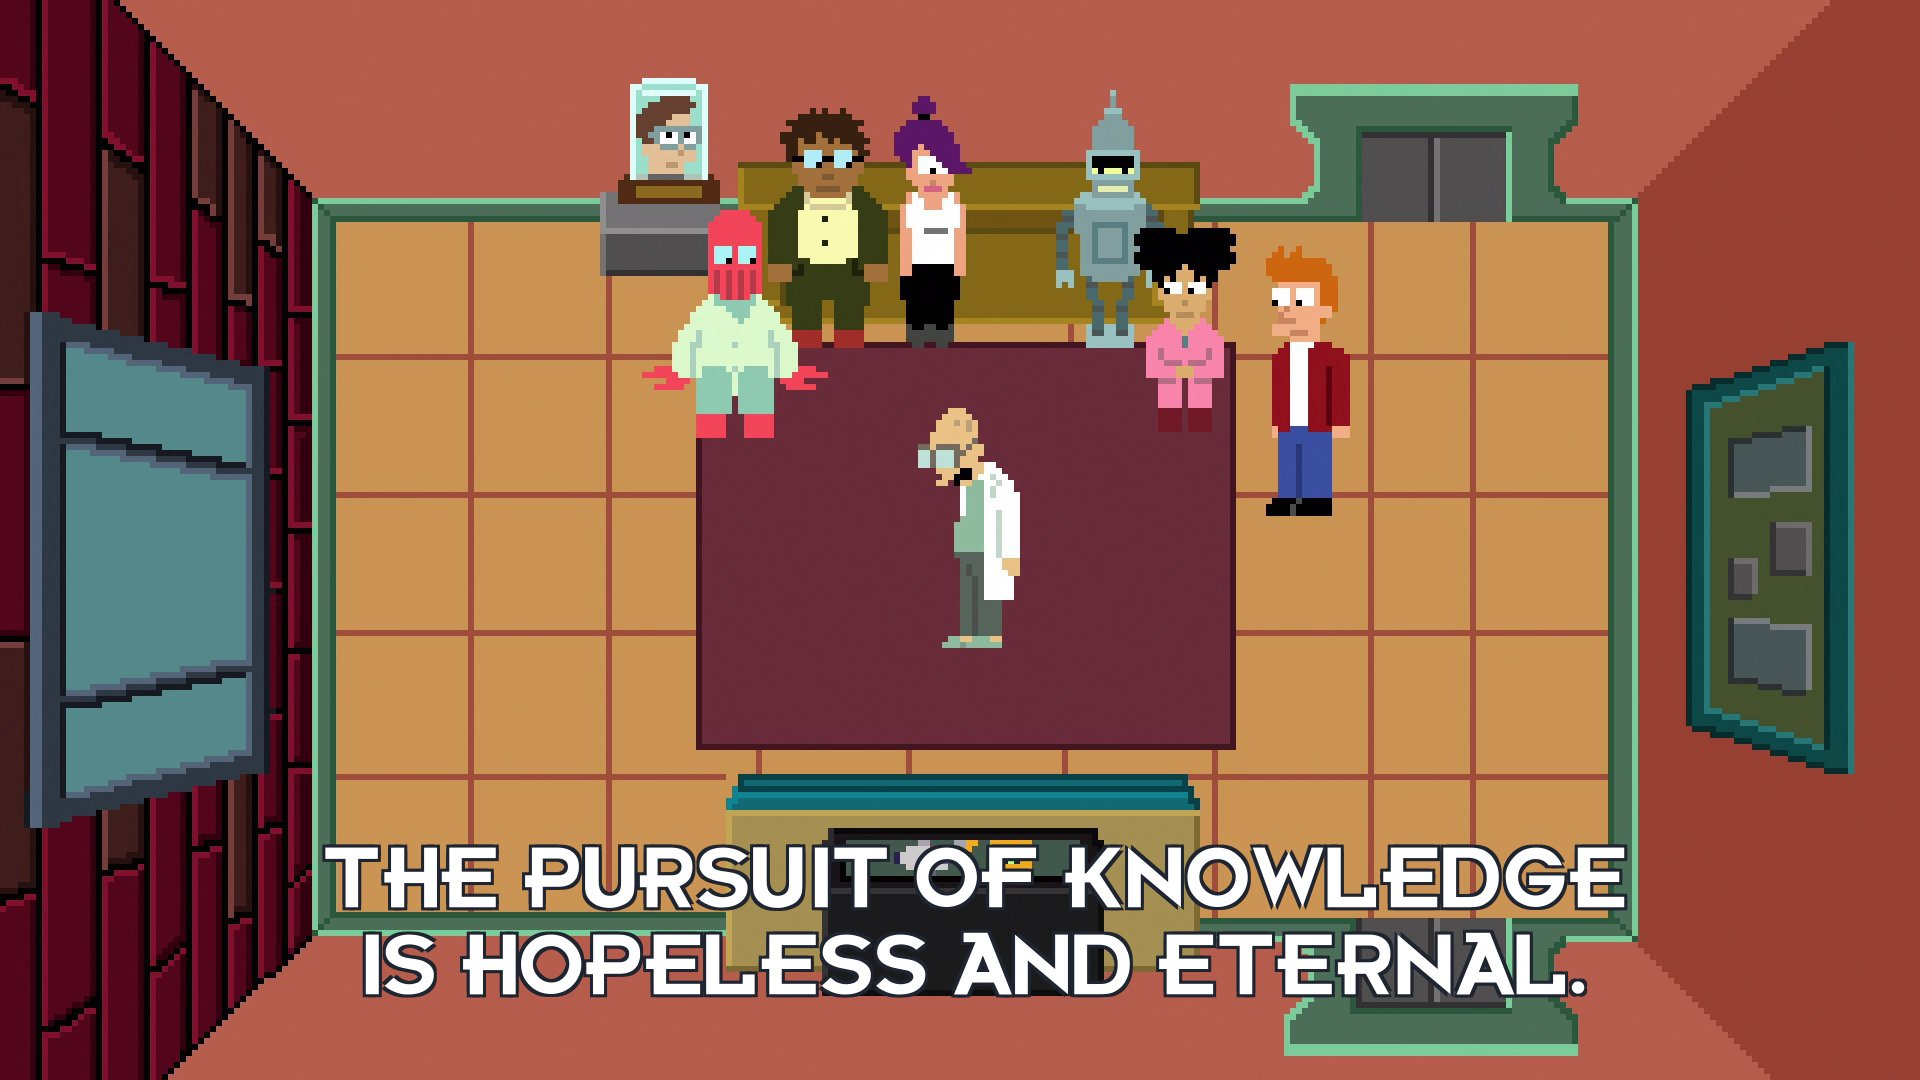 Prof Hubert J Farnsworth: The pursuit of knowledge is hopeless and eternal.